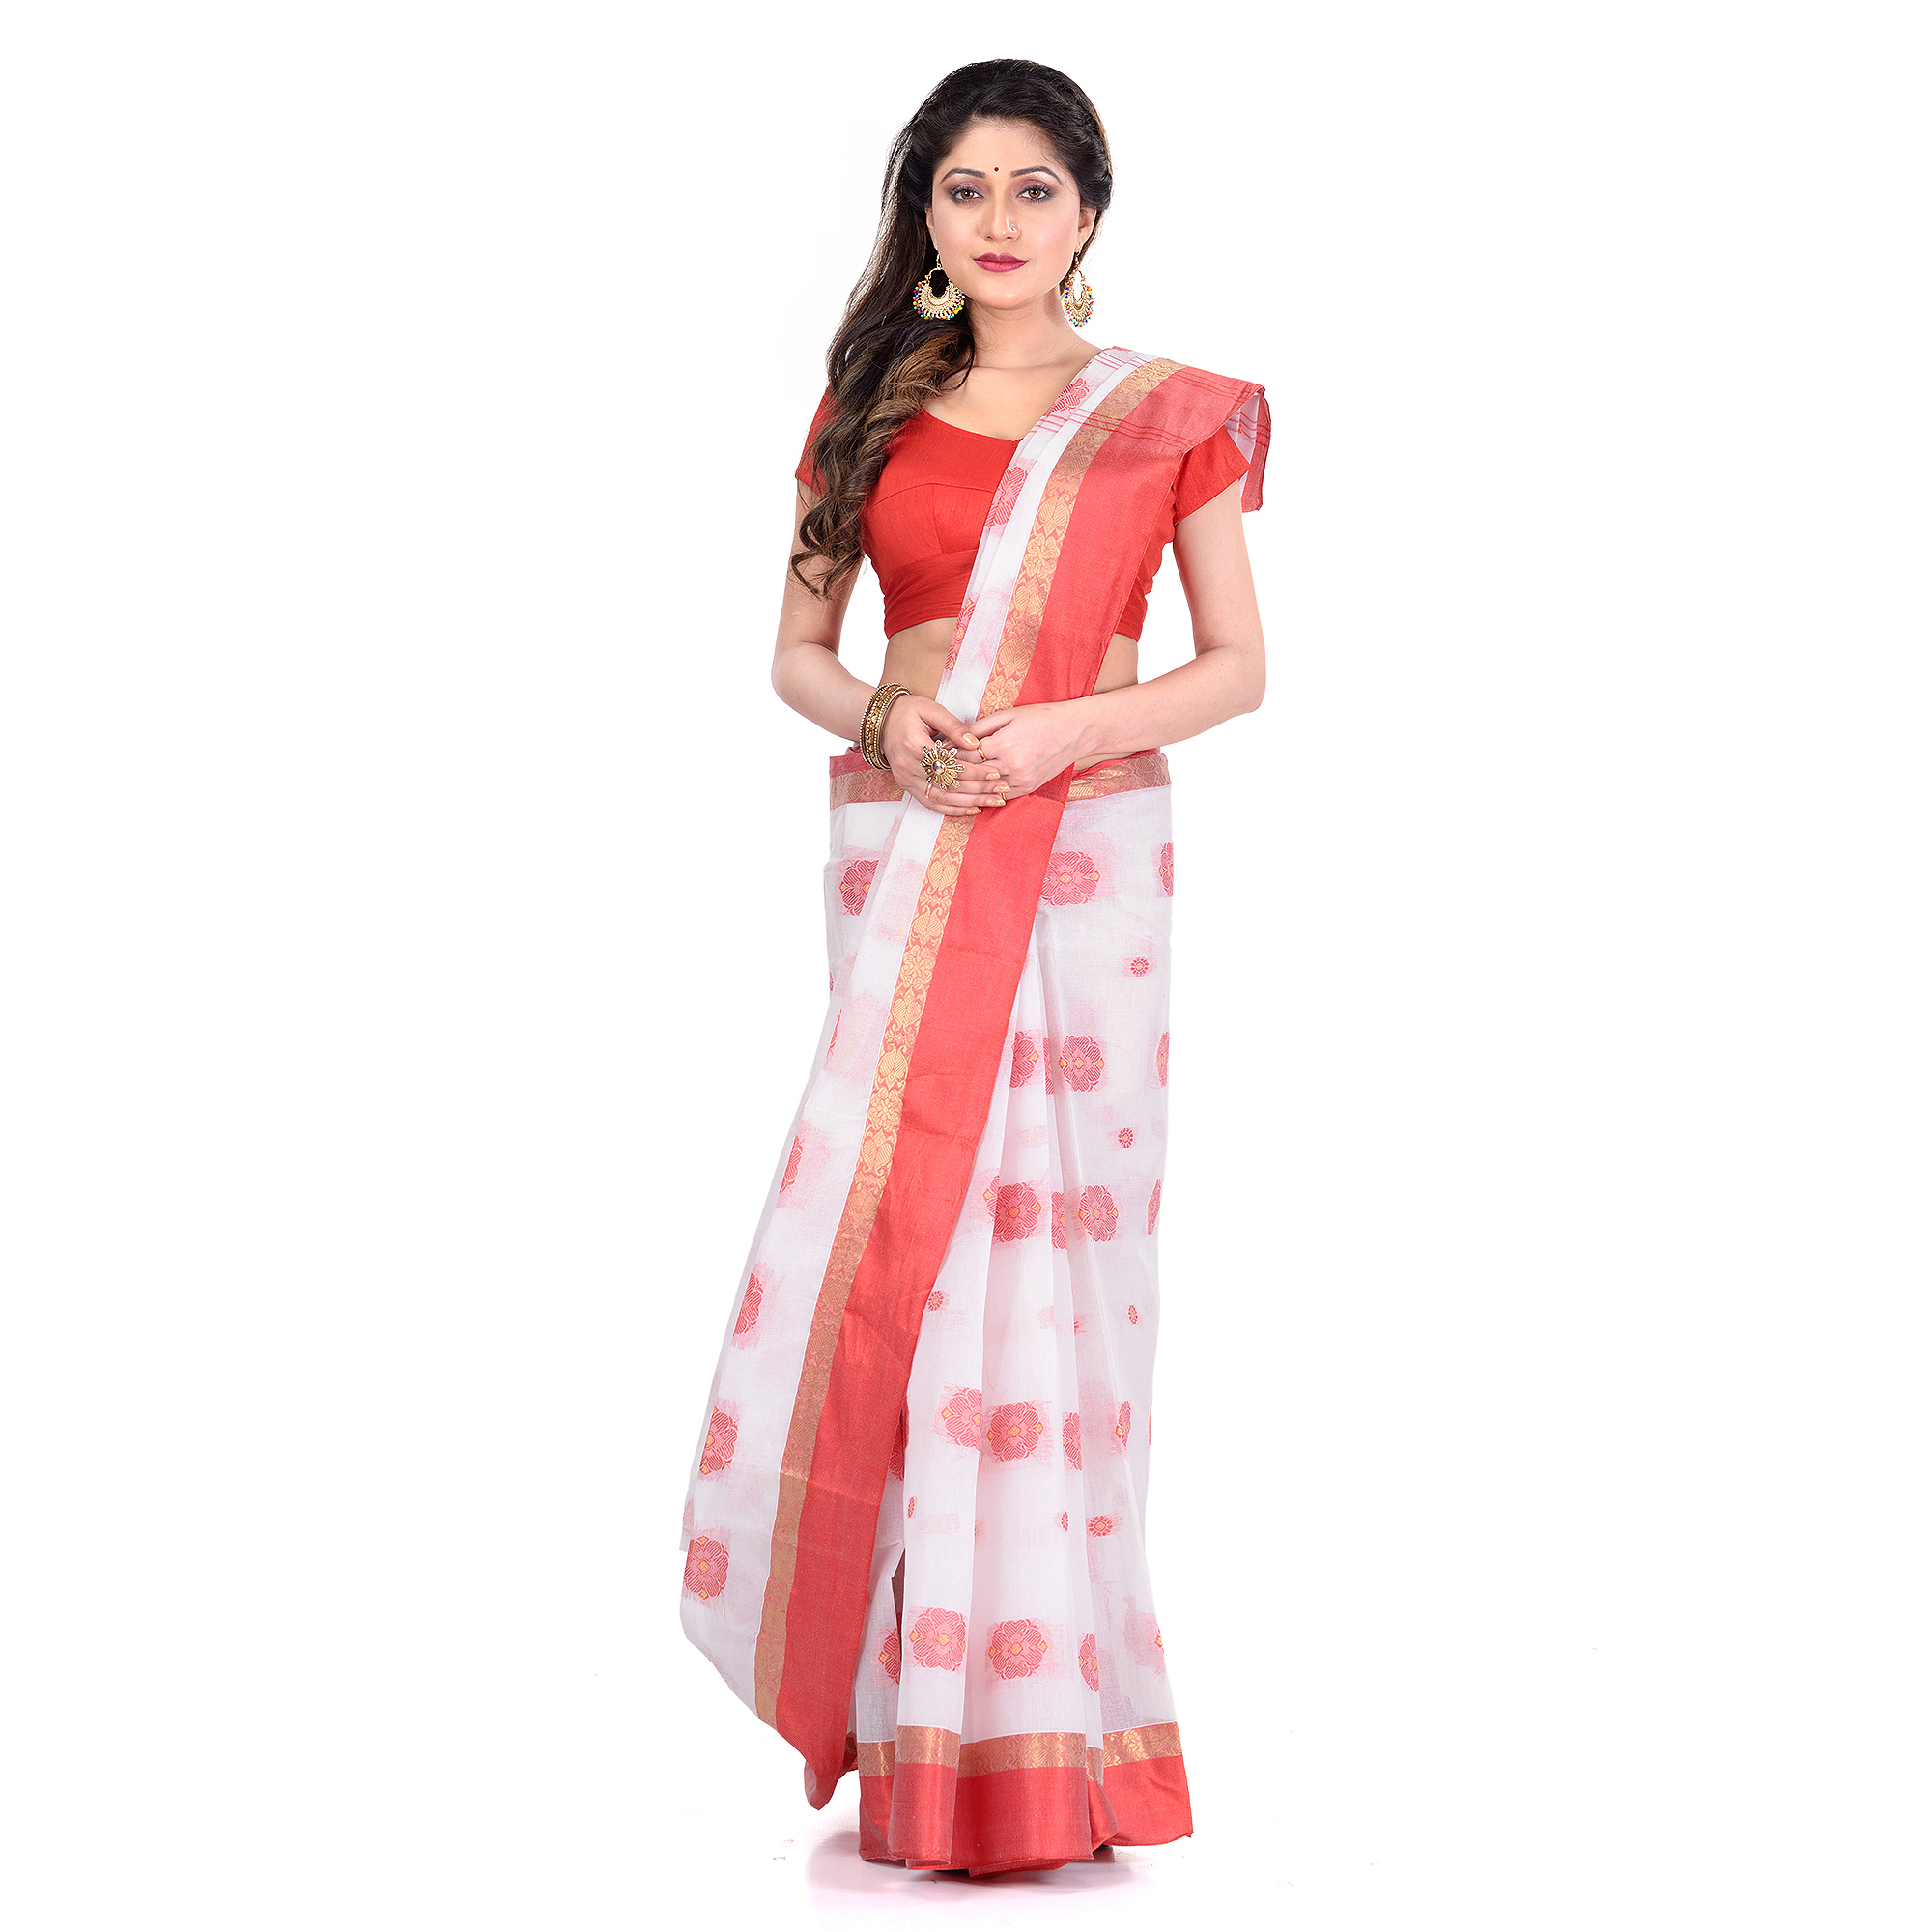 DESH BIDESH Women`s Traditional Bengal Tant Pure Handloom Cotton Saree Woven Fuleswari Design Without Blouse Piece (Red White)